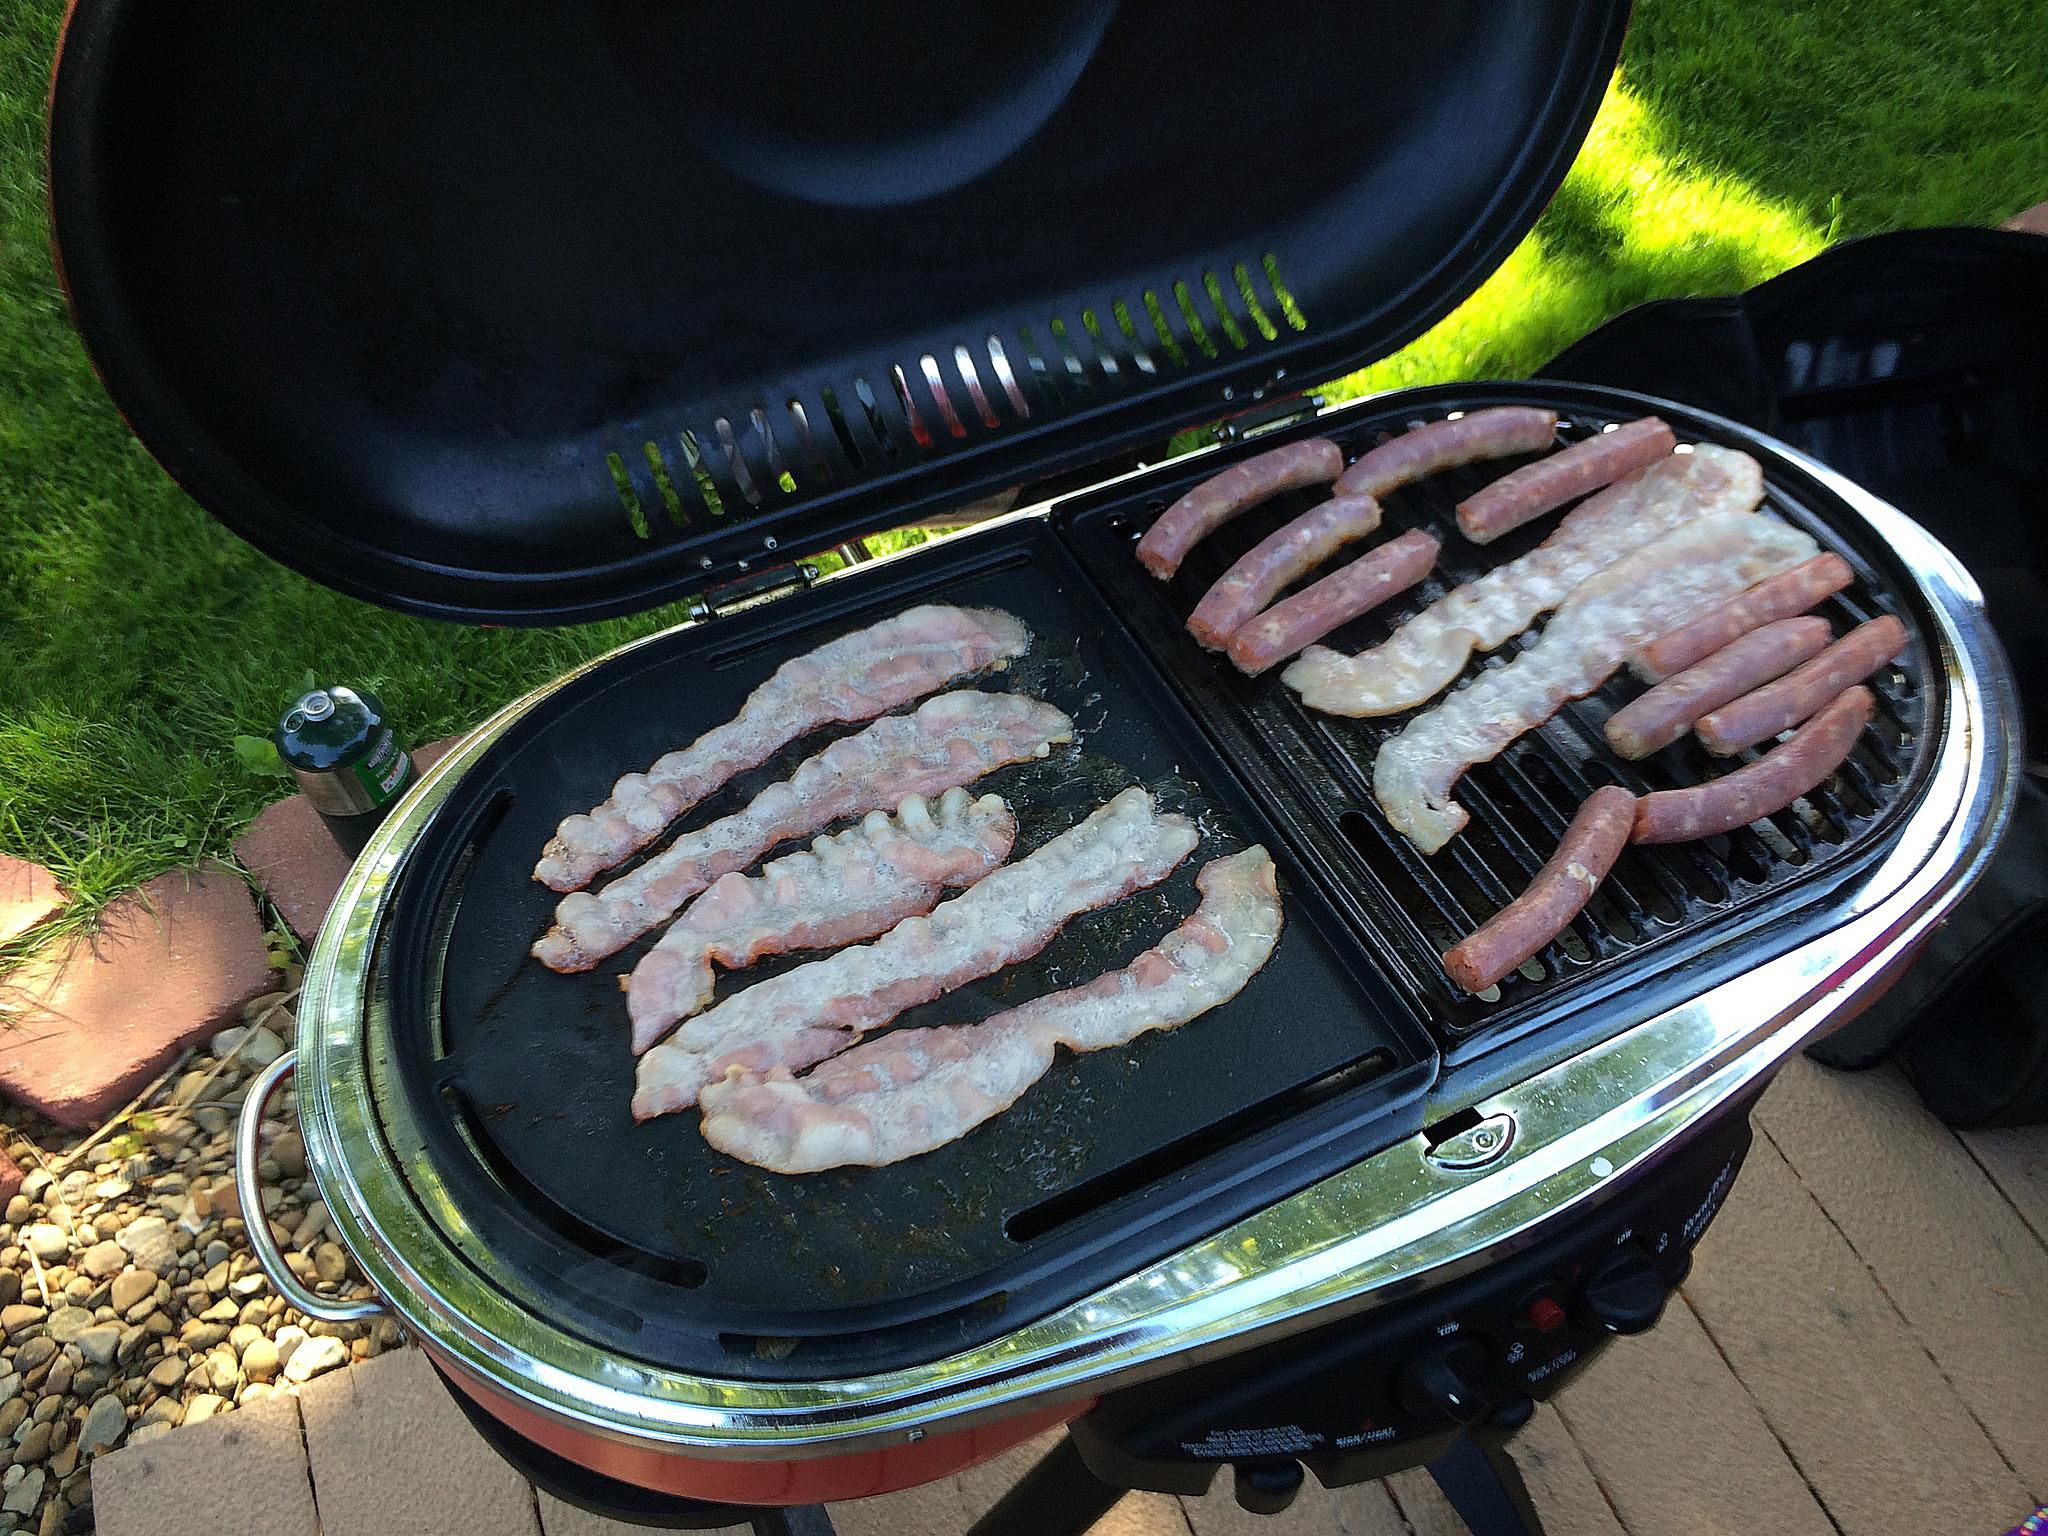 breakfast on the grill tips and tools